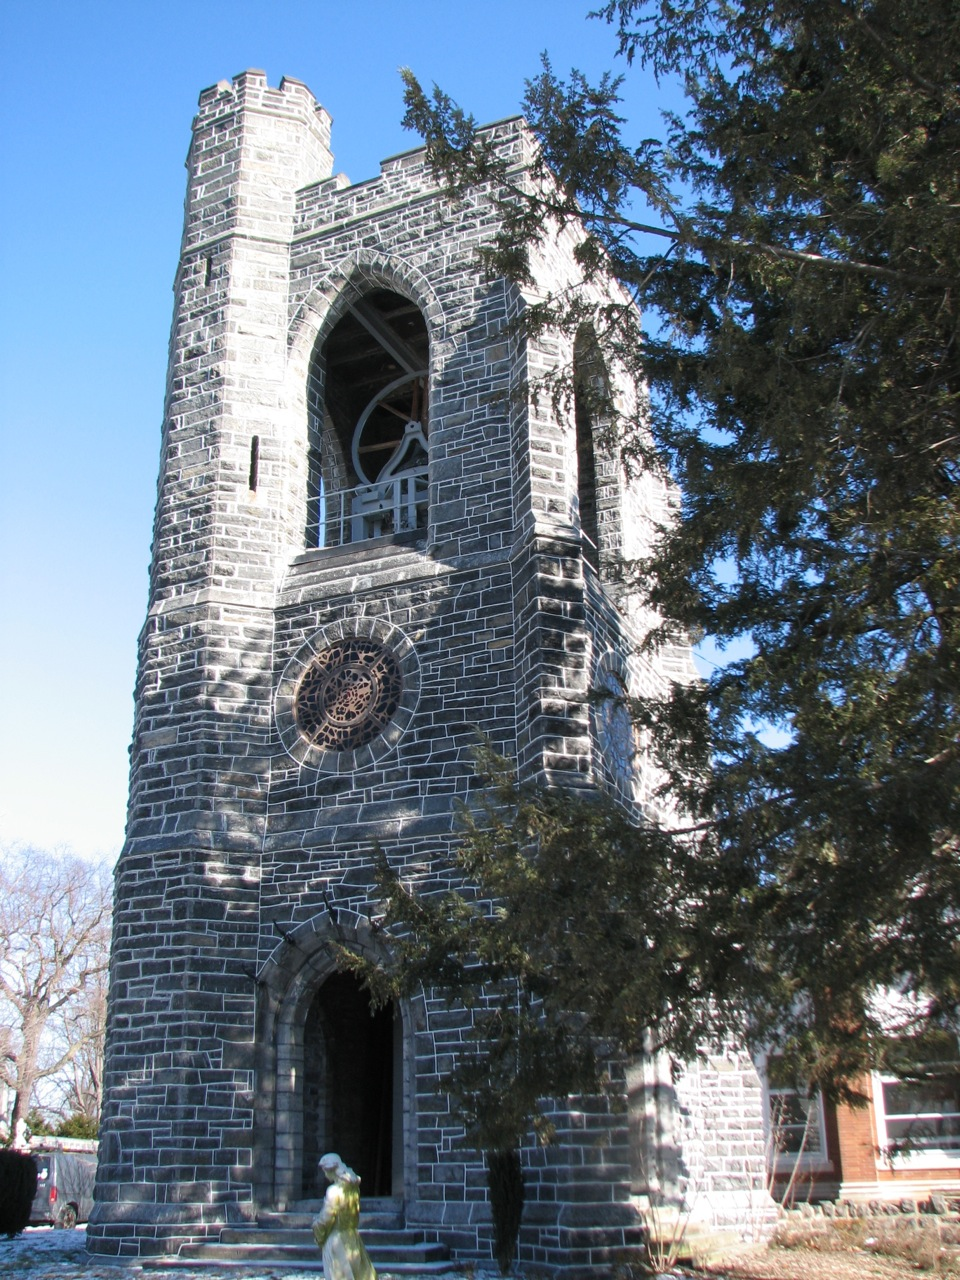 West Laurel Hill's Gothic Revvial bell tower was designed by architects Walter Cope and John Stewardson.